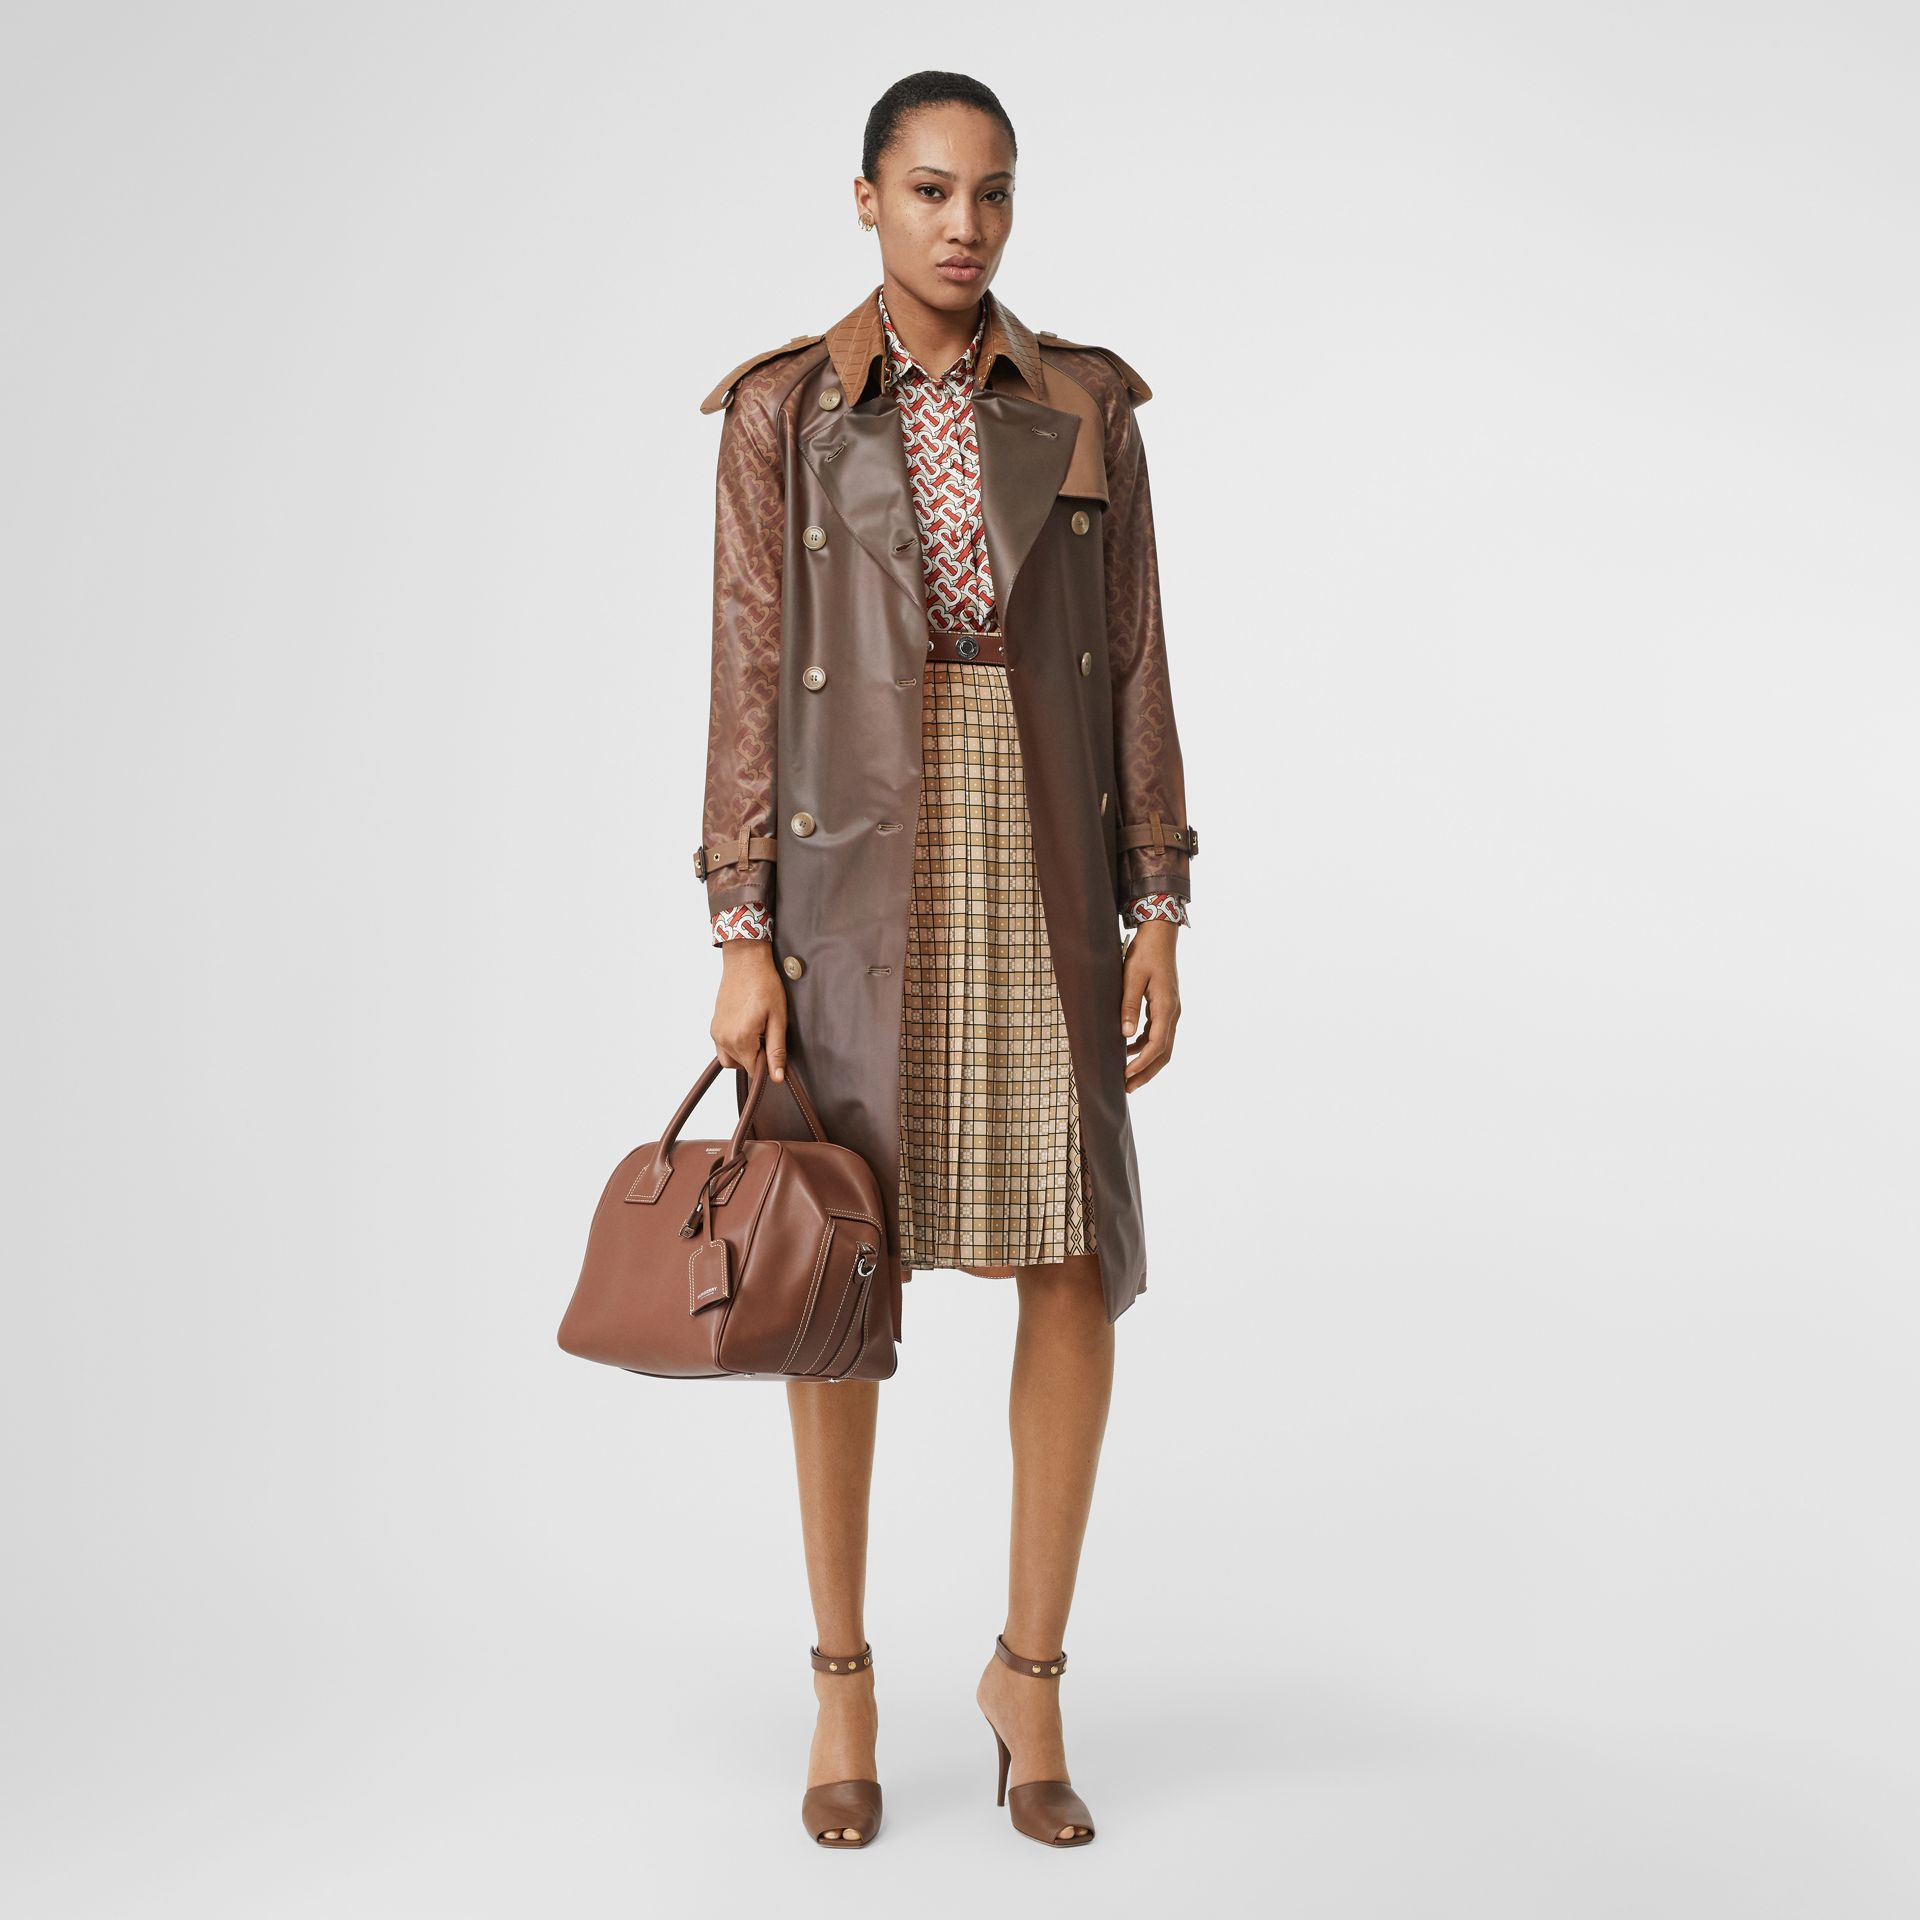 Contrast Graphic Print Pleated Skirt in Latte - Women | Burberry - gallery image 0